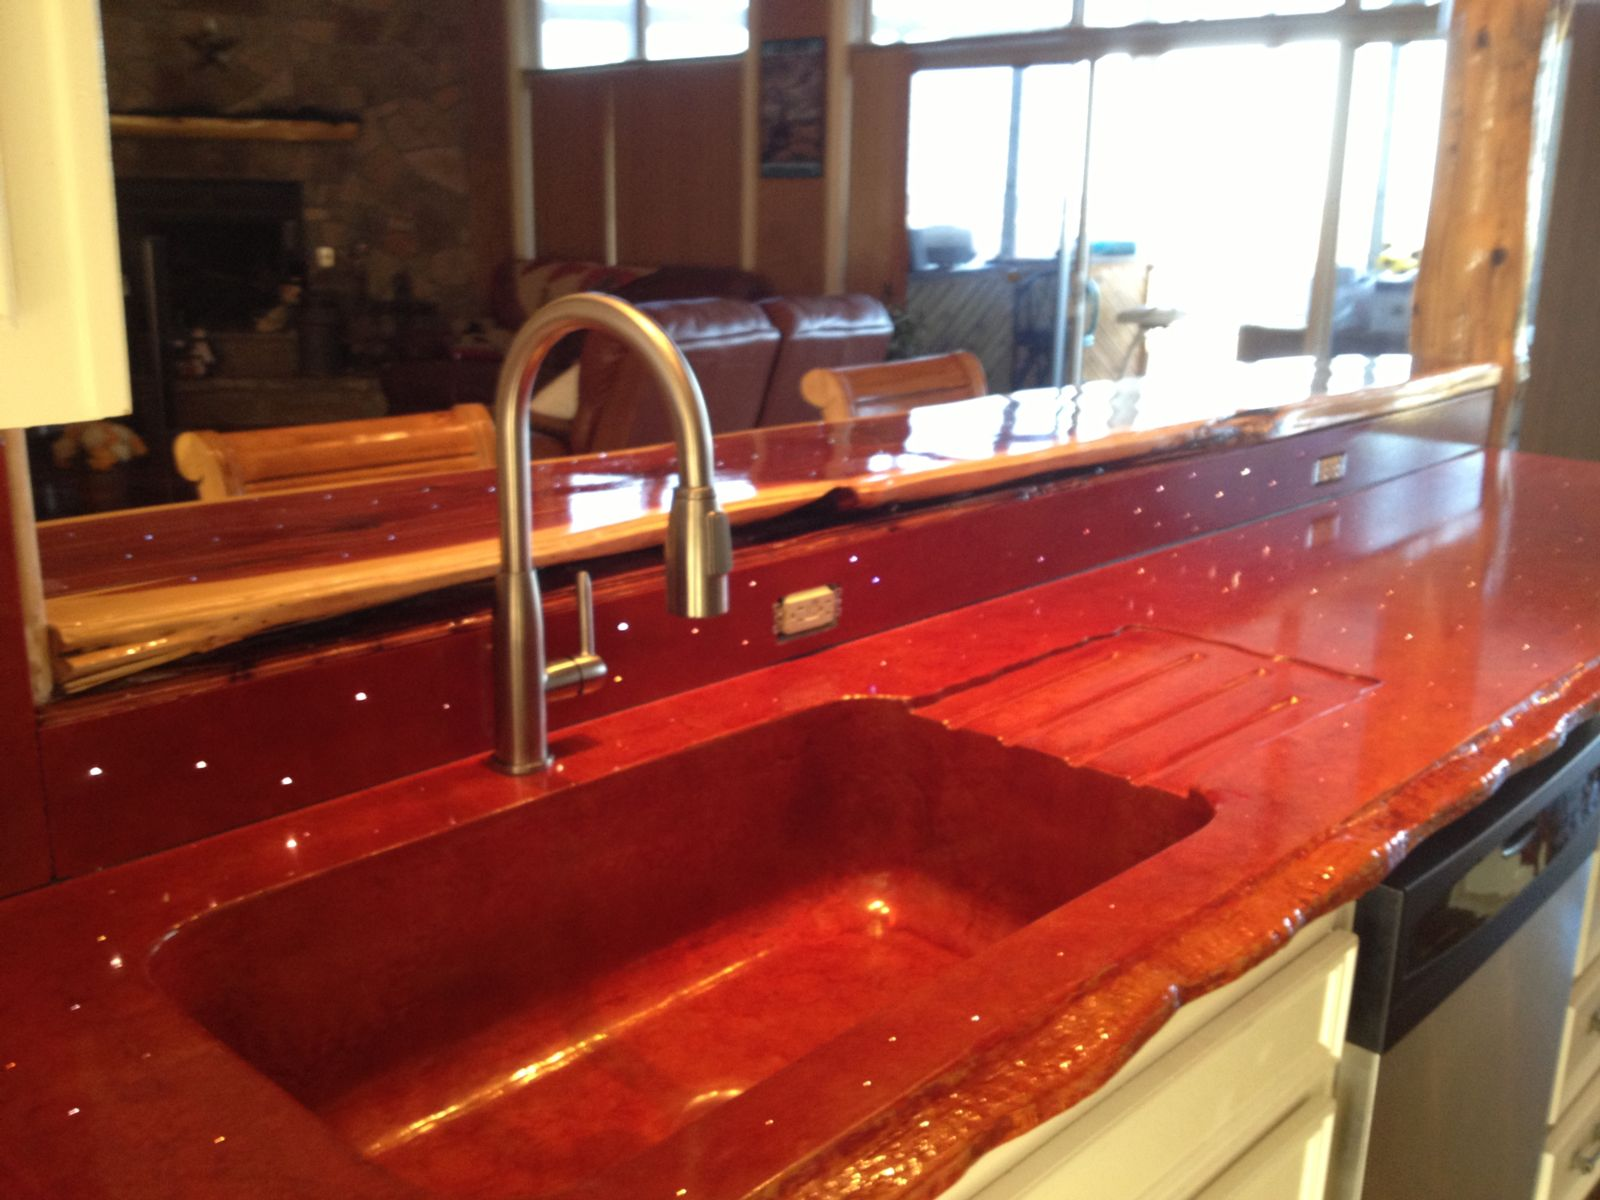 Red kitchen countertops cast in place with LED lights